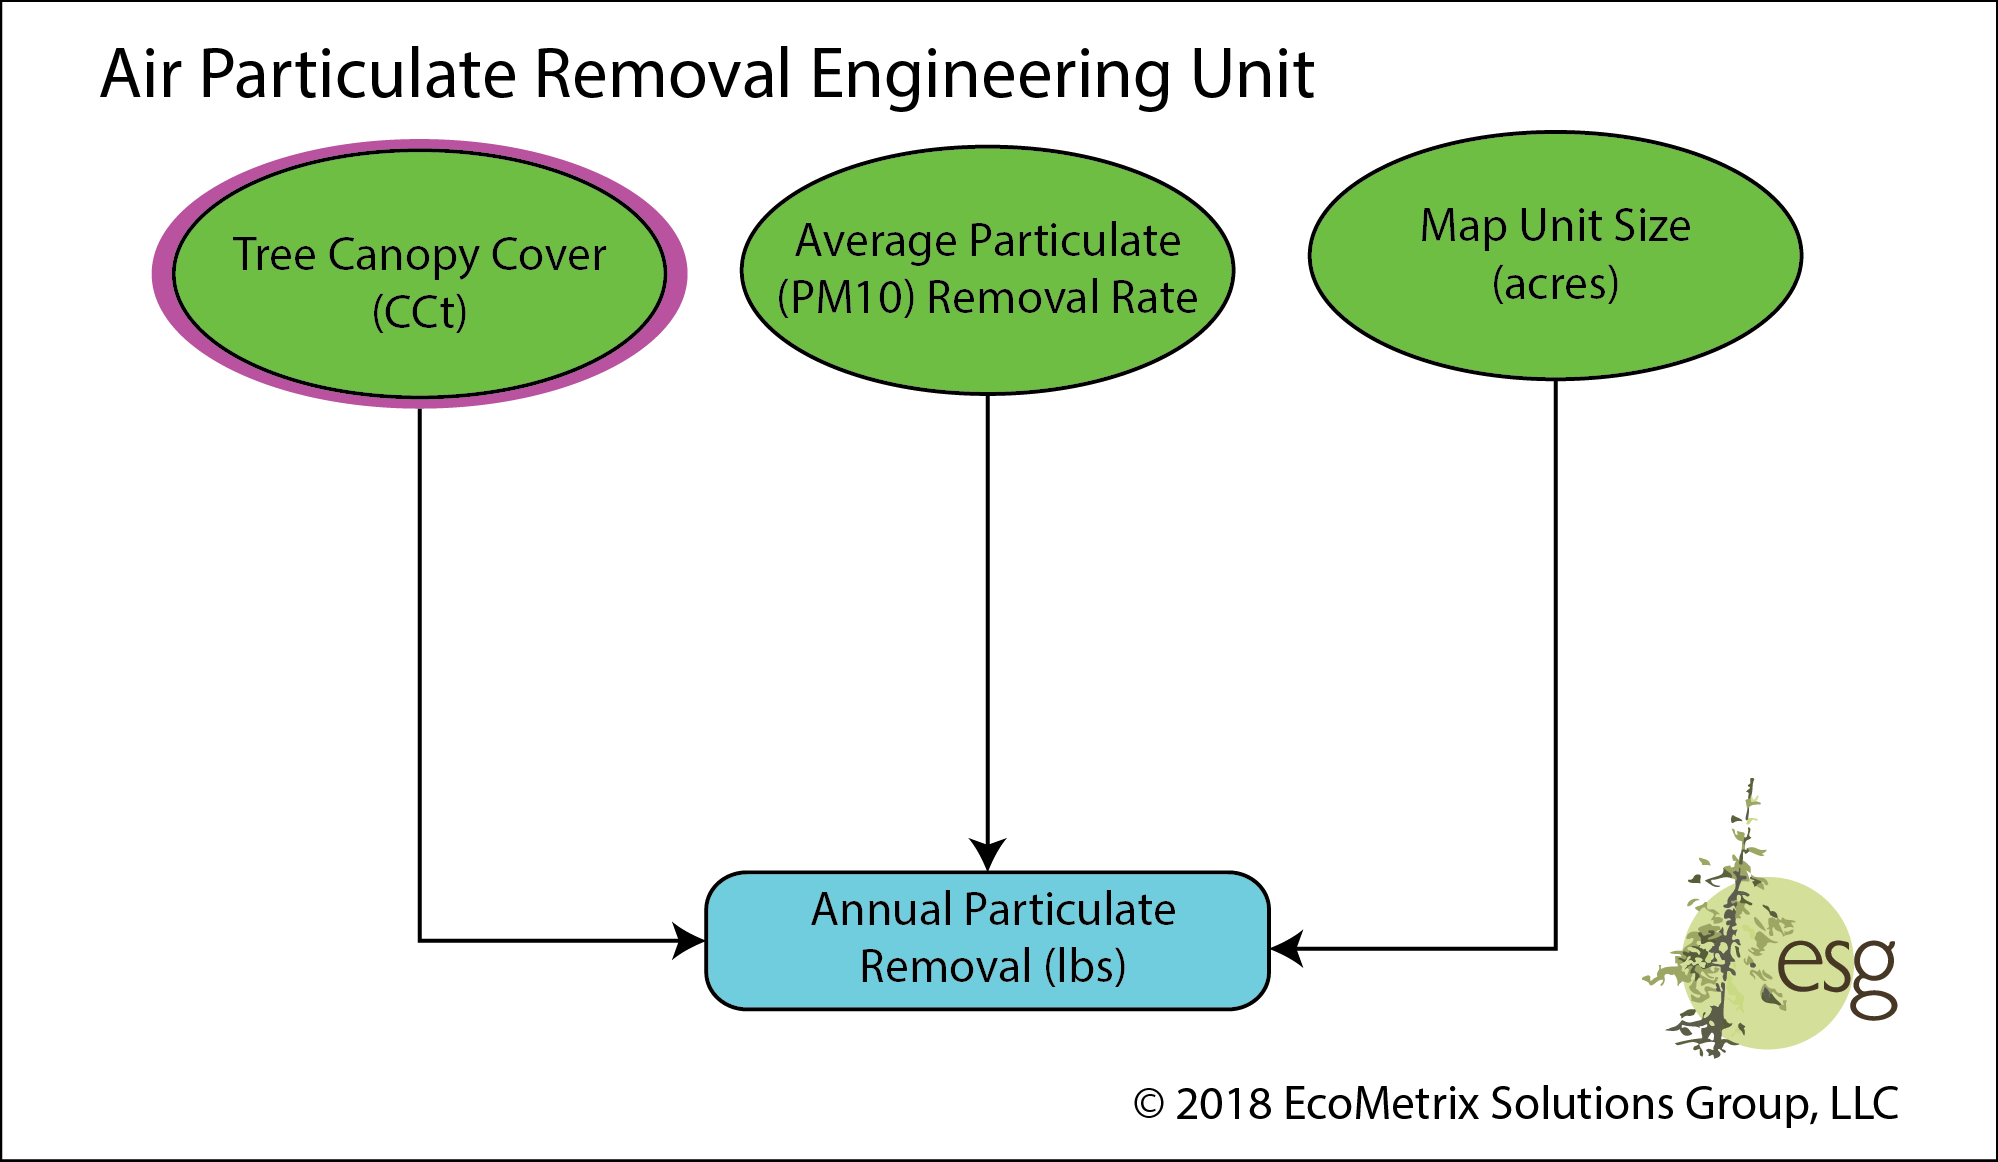 The potential for a map unit to sequester airborne particulate matter in the PM10 range through interaction with vegetative canopy cover of trees.